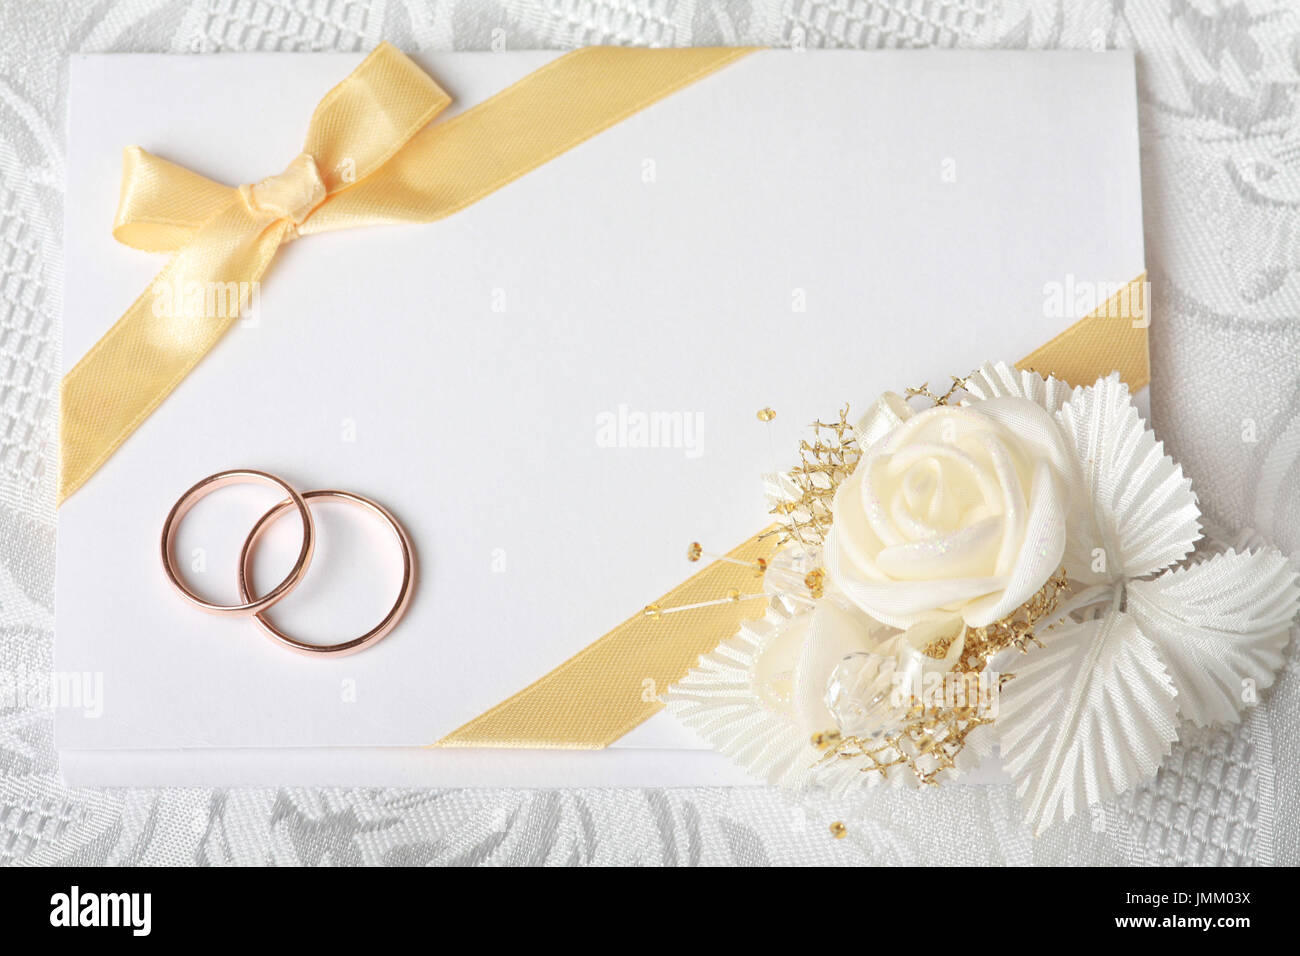 Wedding Invitation Card With Gold Rings And Satin Rose Stock